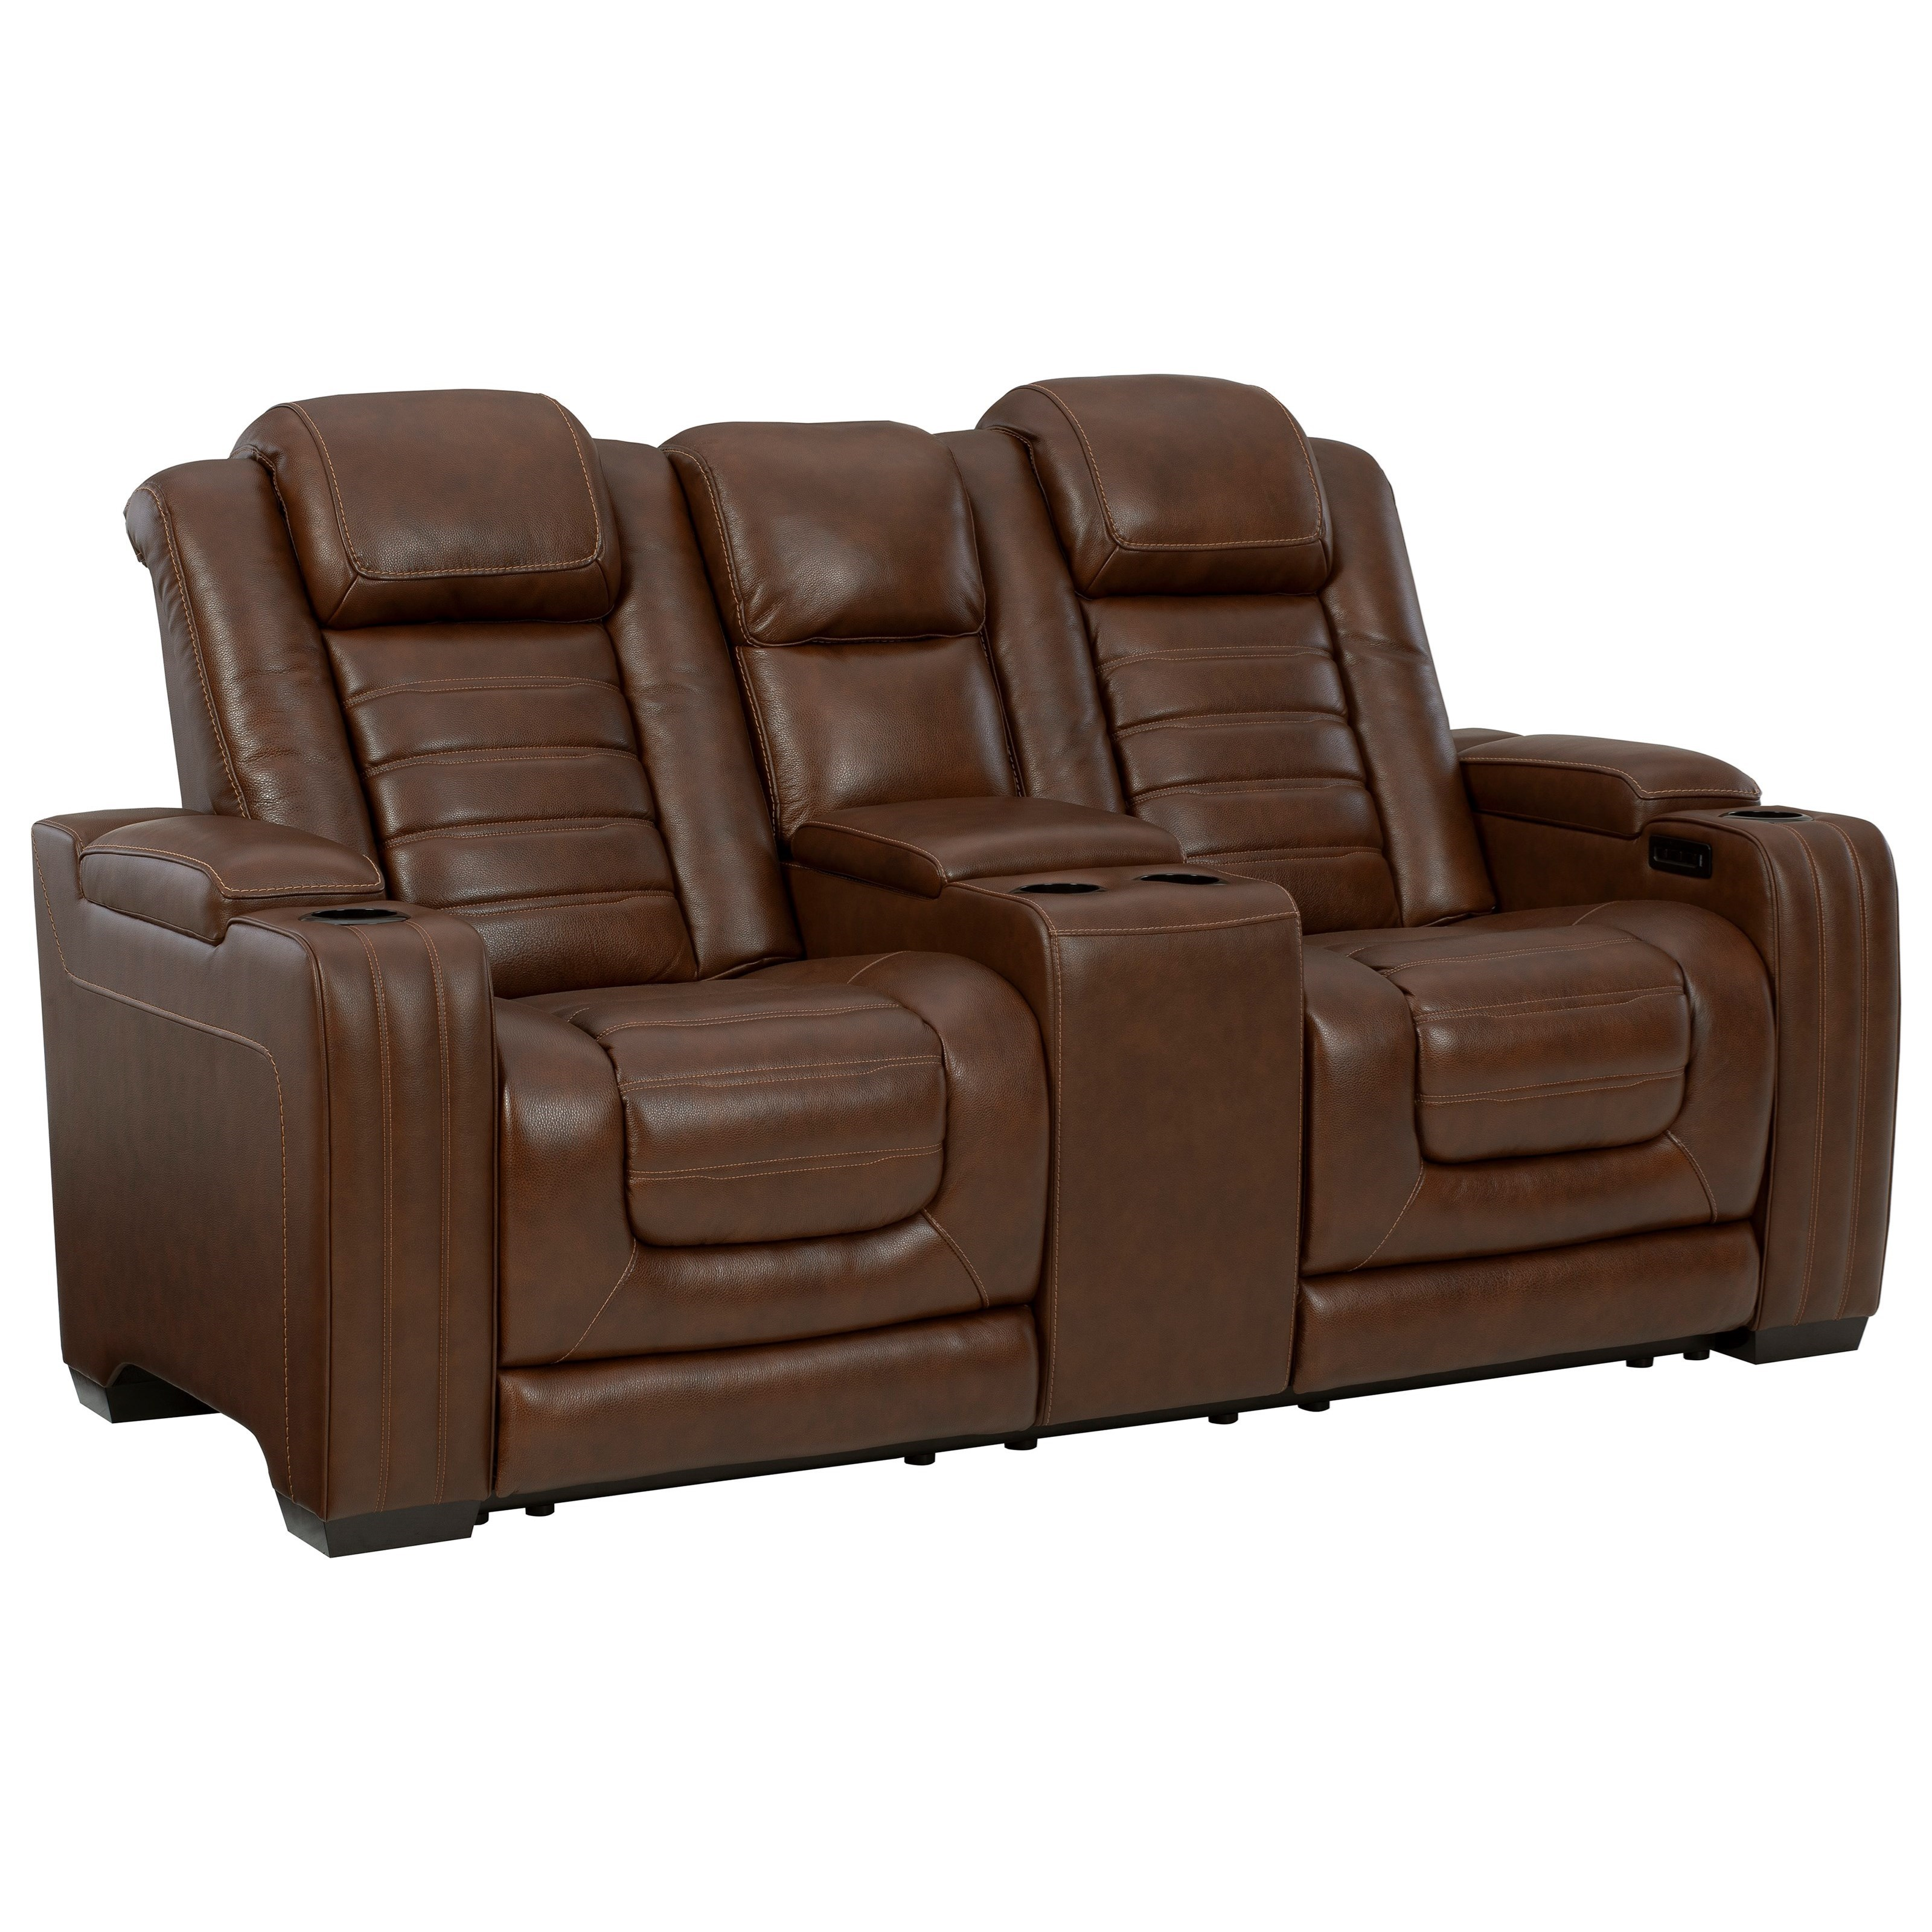 Backtrack Power Reclining Loveseat by Signature Design by Ashley at Beck's Furniture